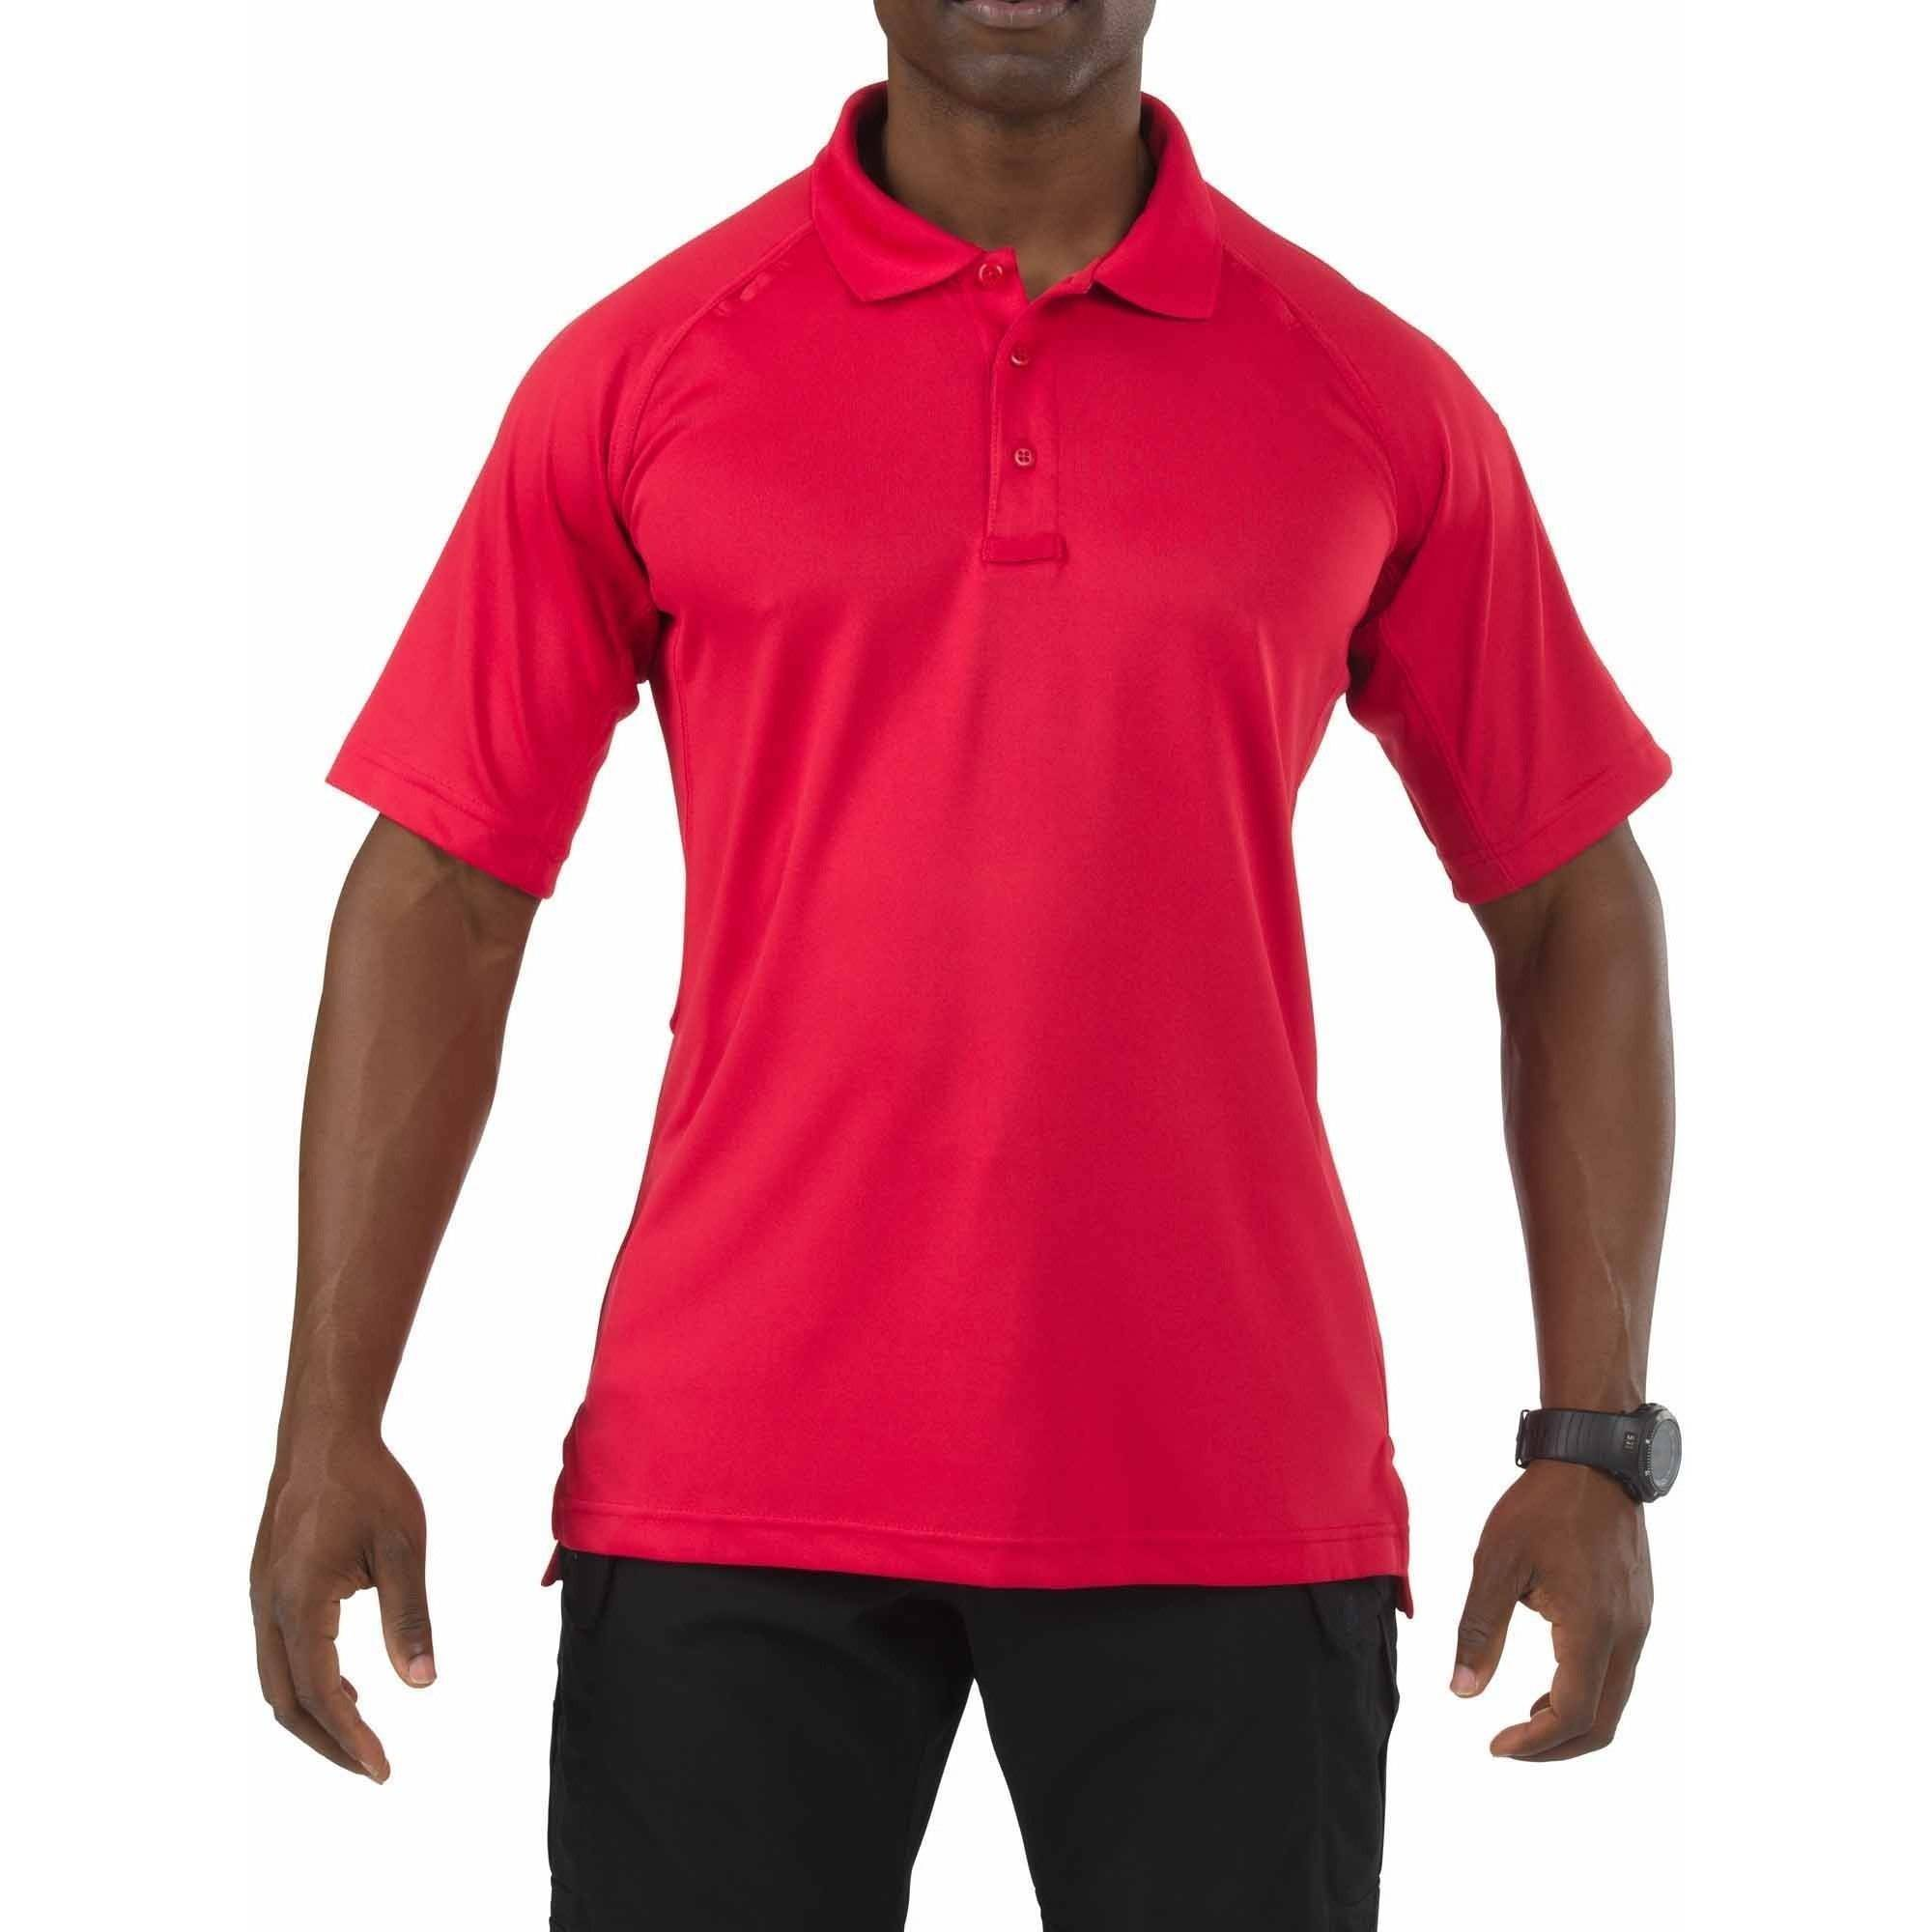 5.11 Tactical Performance Short Sleeve Polo Shirt, Range Red